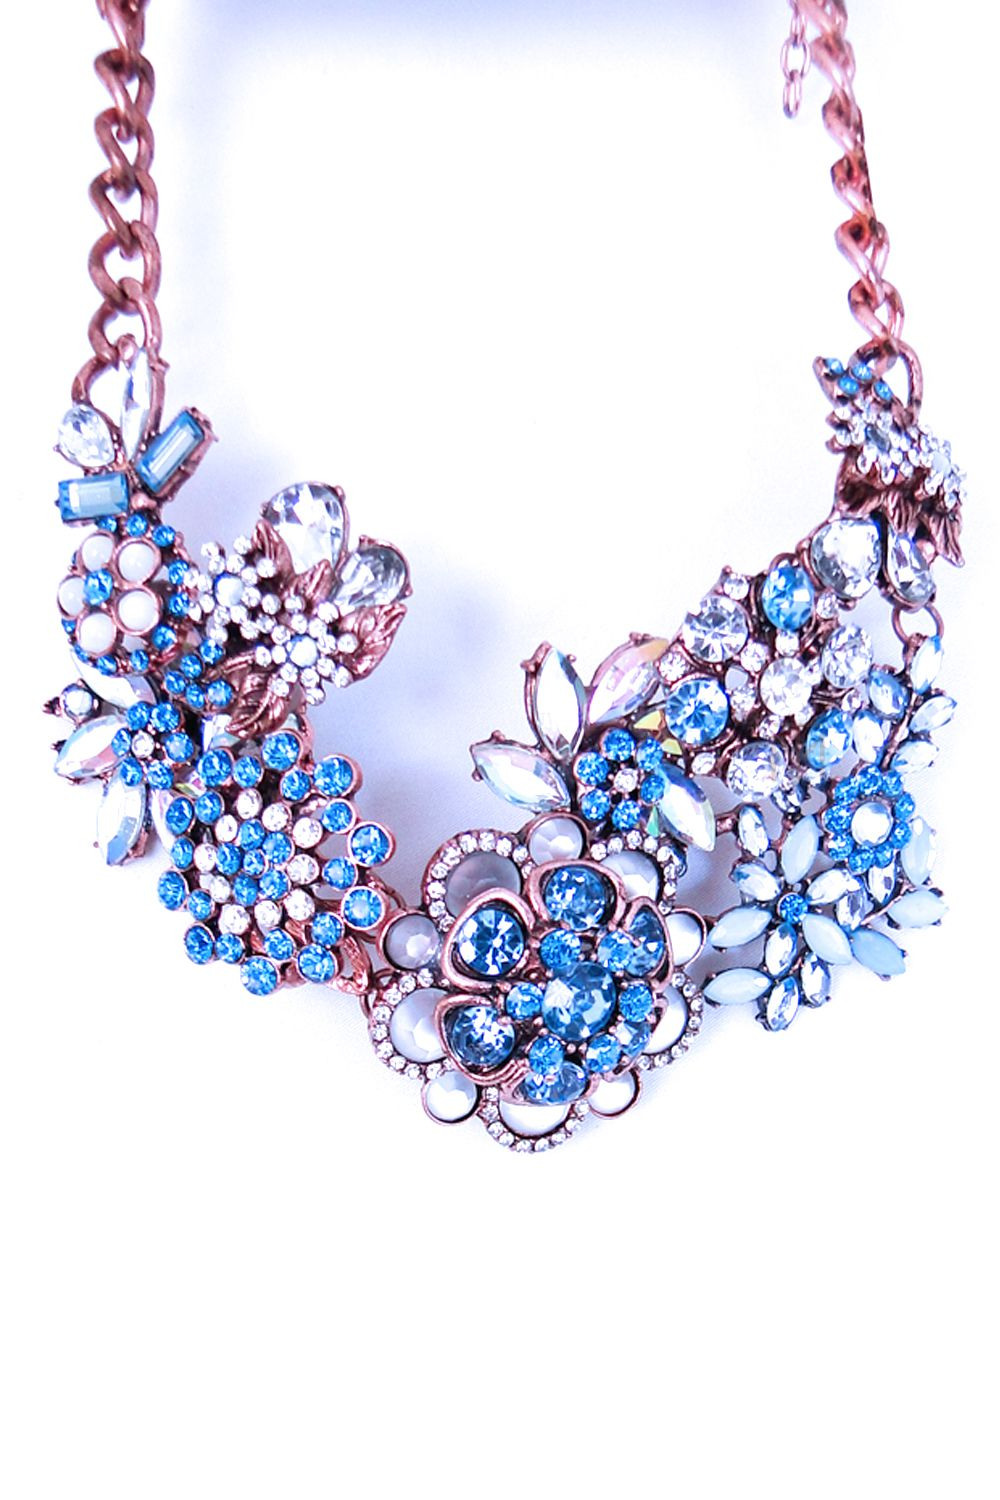 Blue Statements Floral Necklace found on our website and store. Available in pink toooo